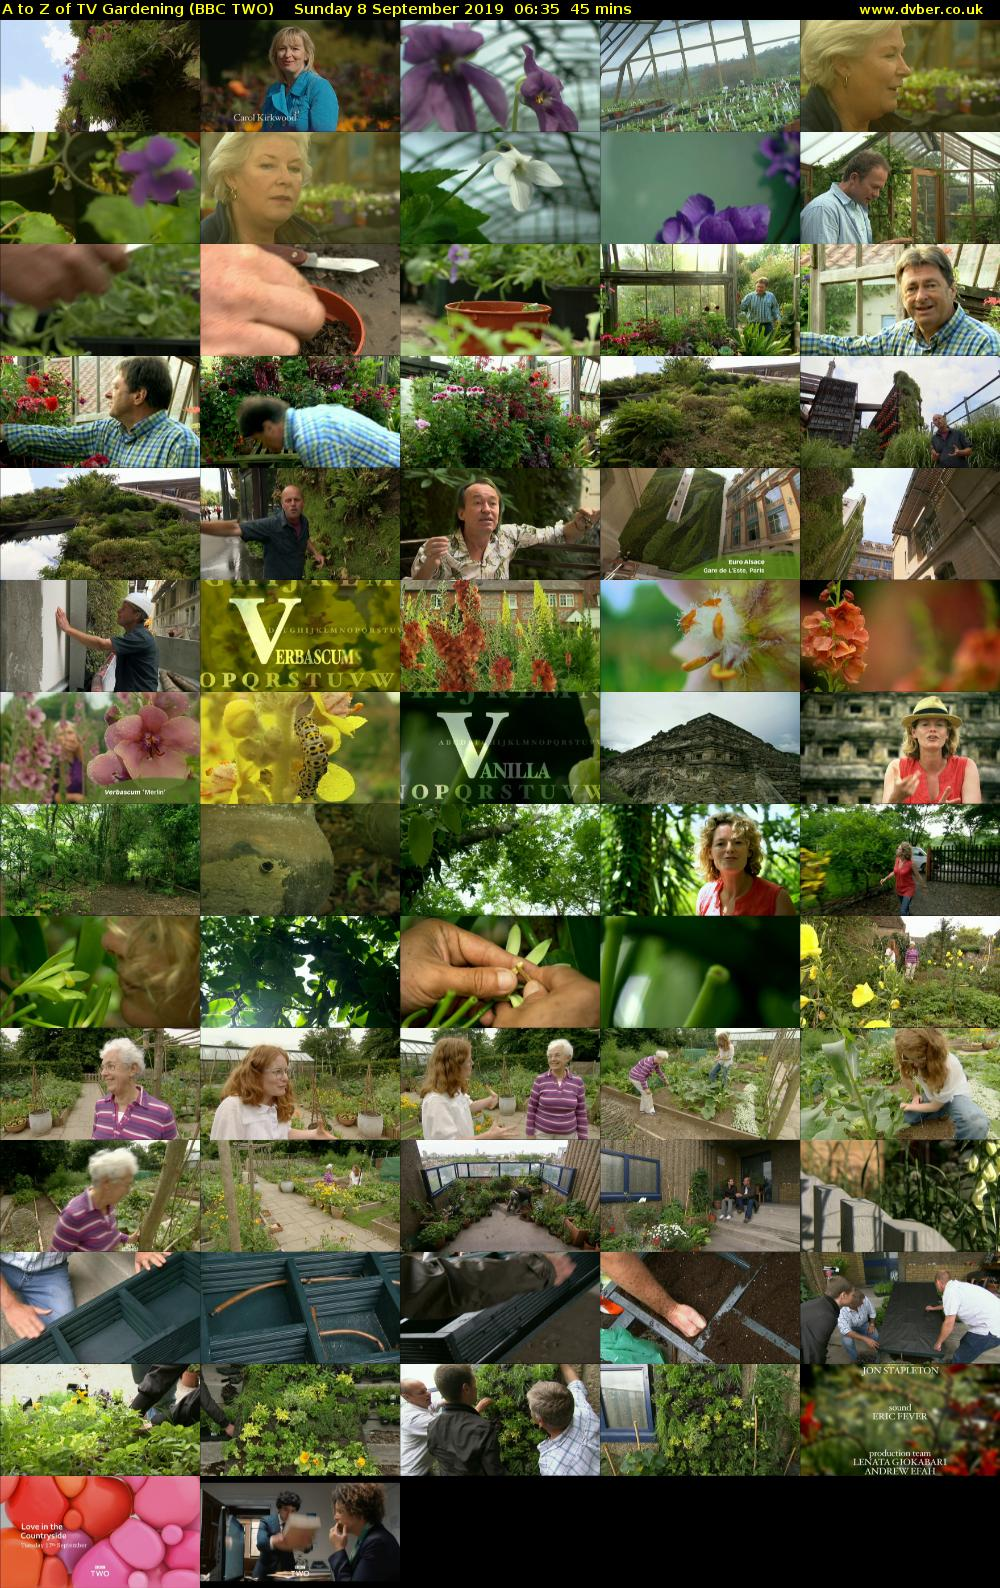 A to Z of TV Gardening (BBC TWO) Sunday 8 September 2019 06:35 - 07:20